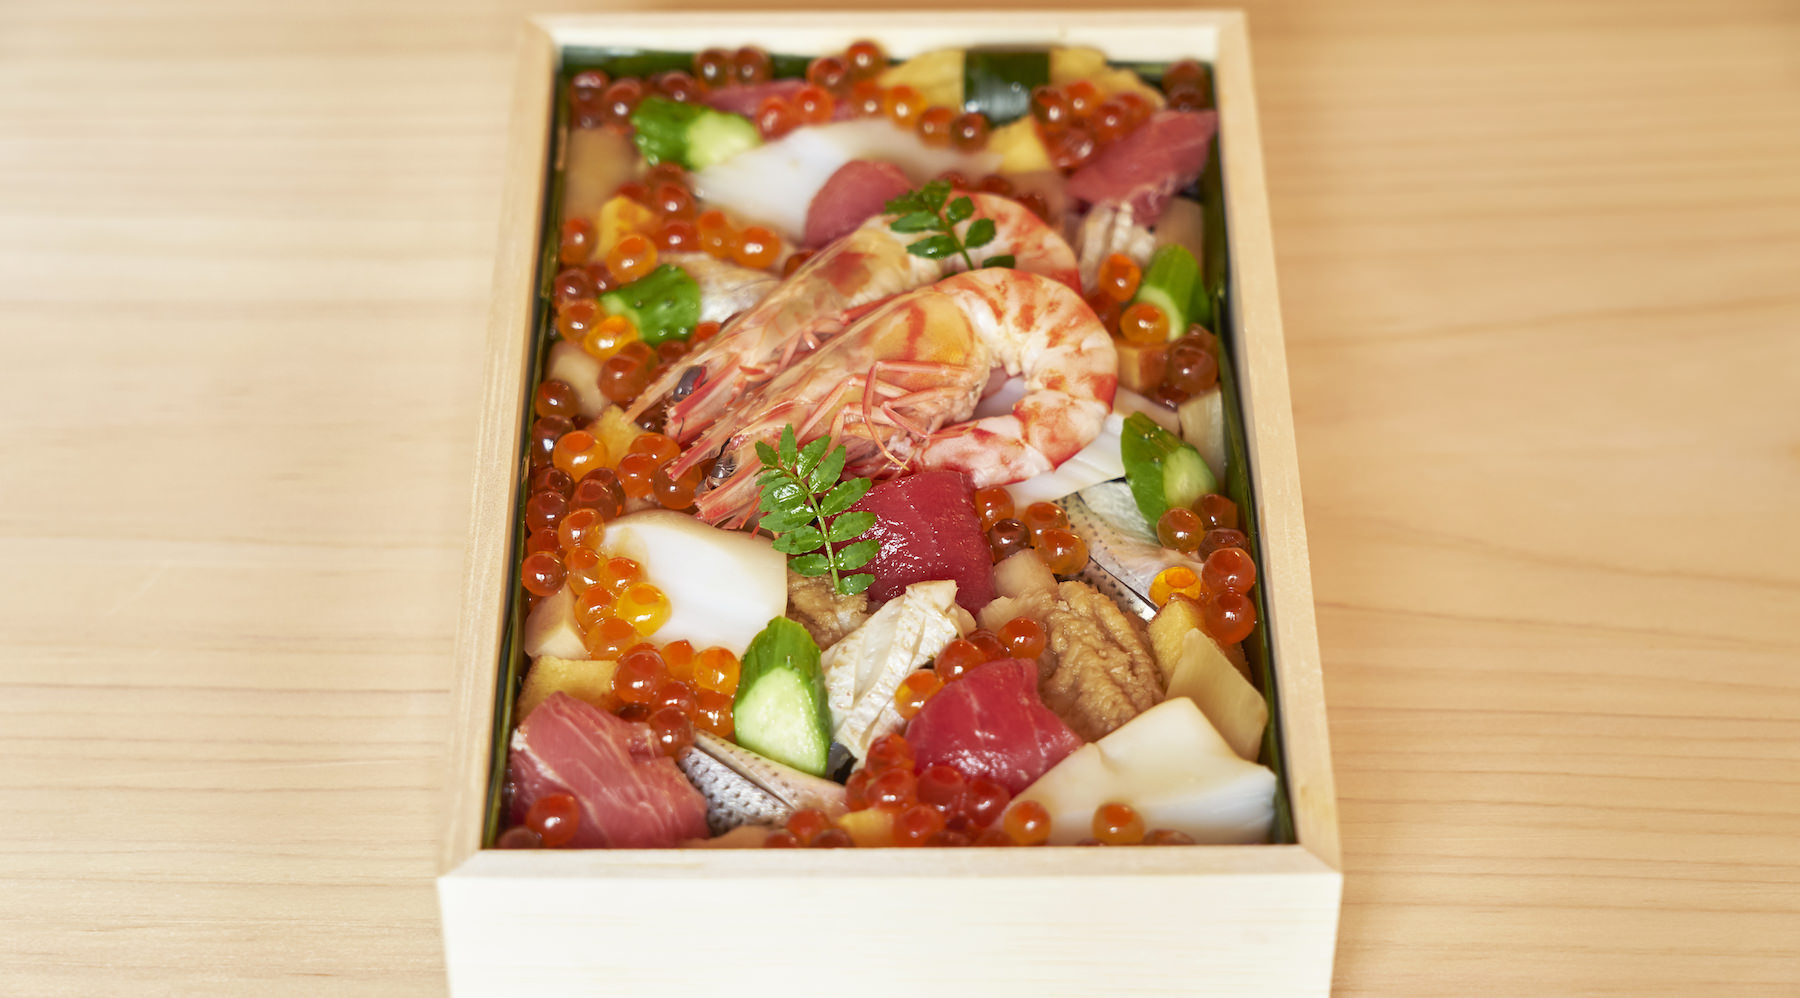 Sushi Ao (Takeaway)'s images2